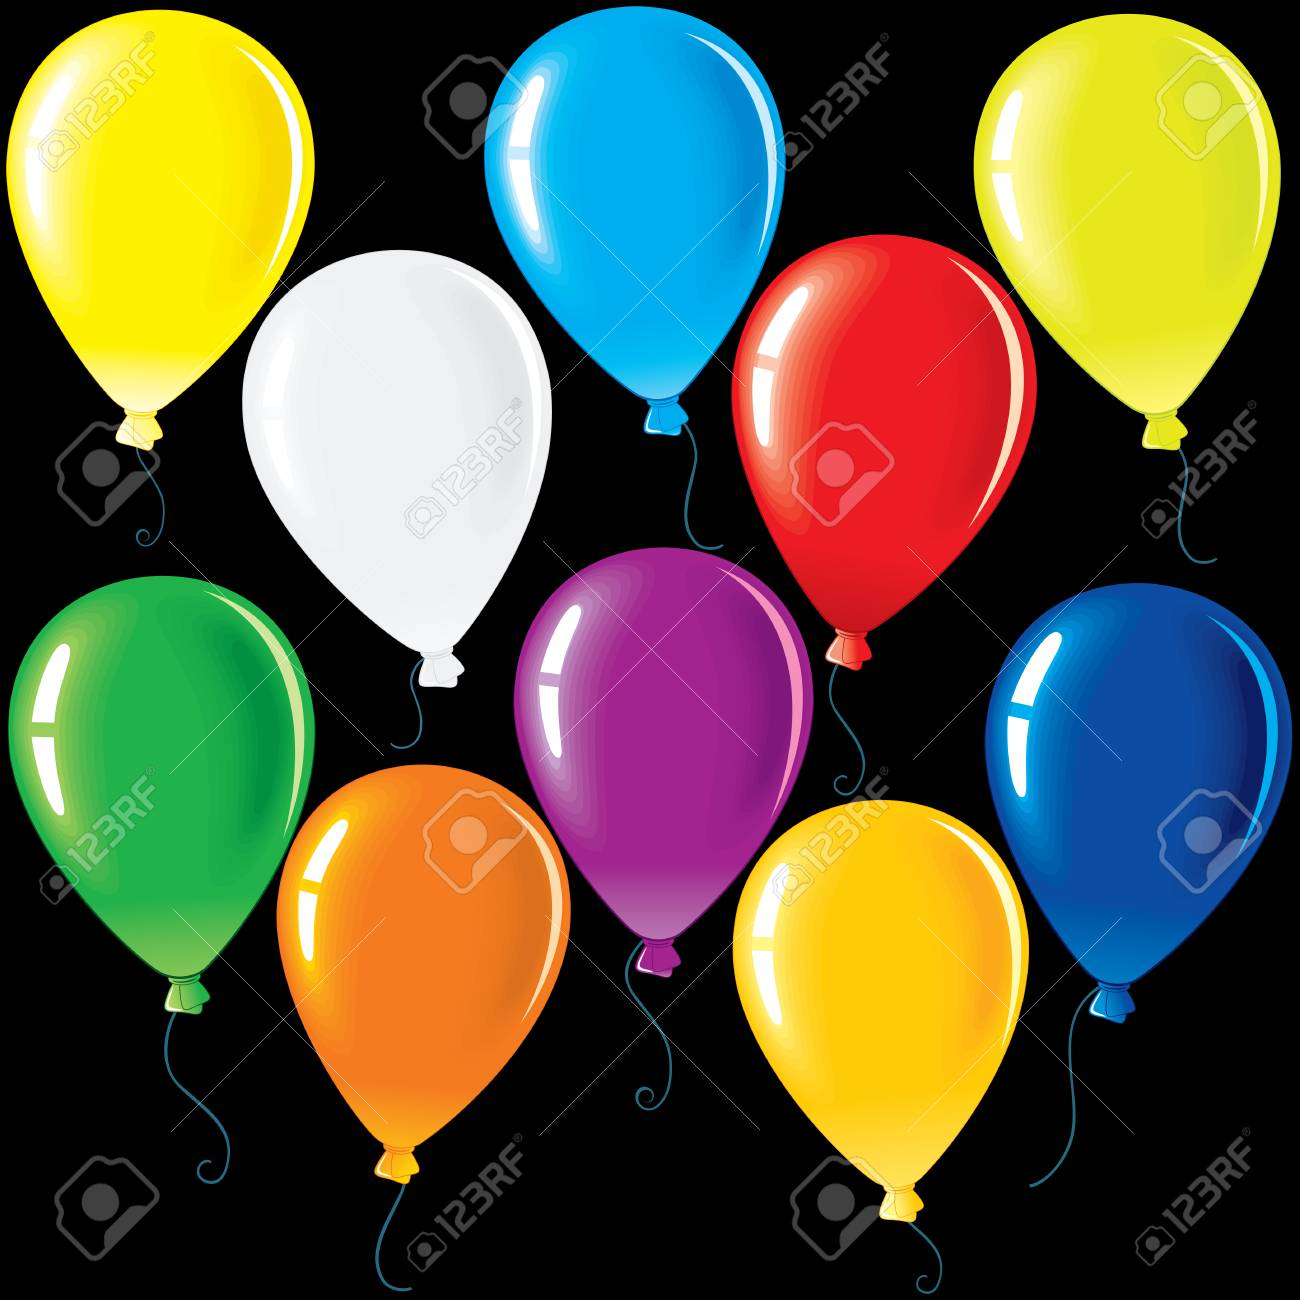 hight resolution of isolated colorful party balloons vector colorful clip art for your festive design stock vector